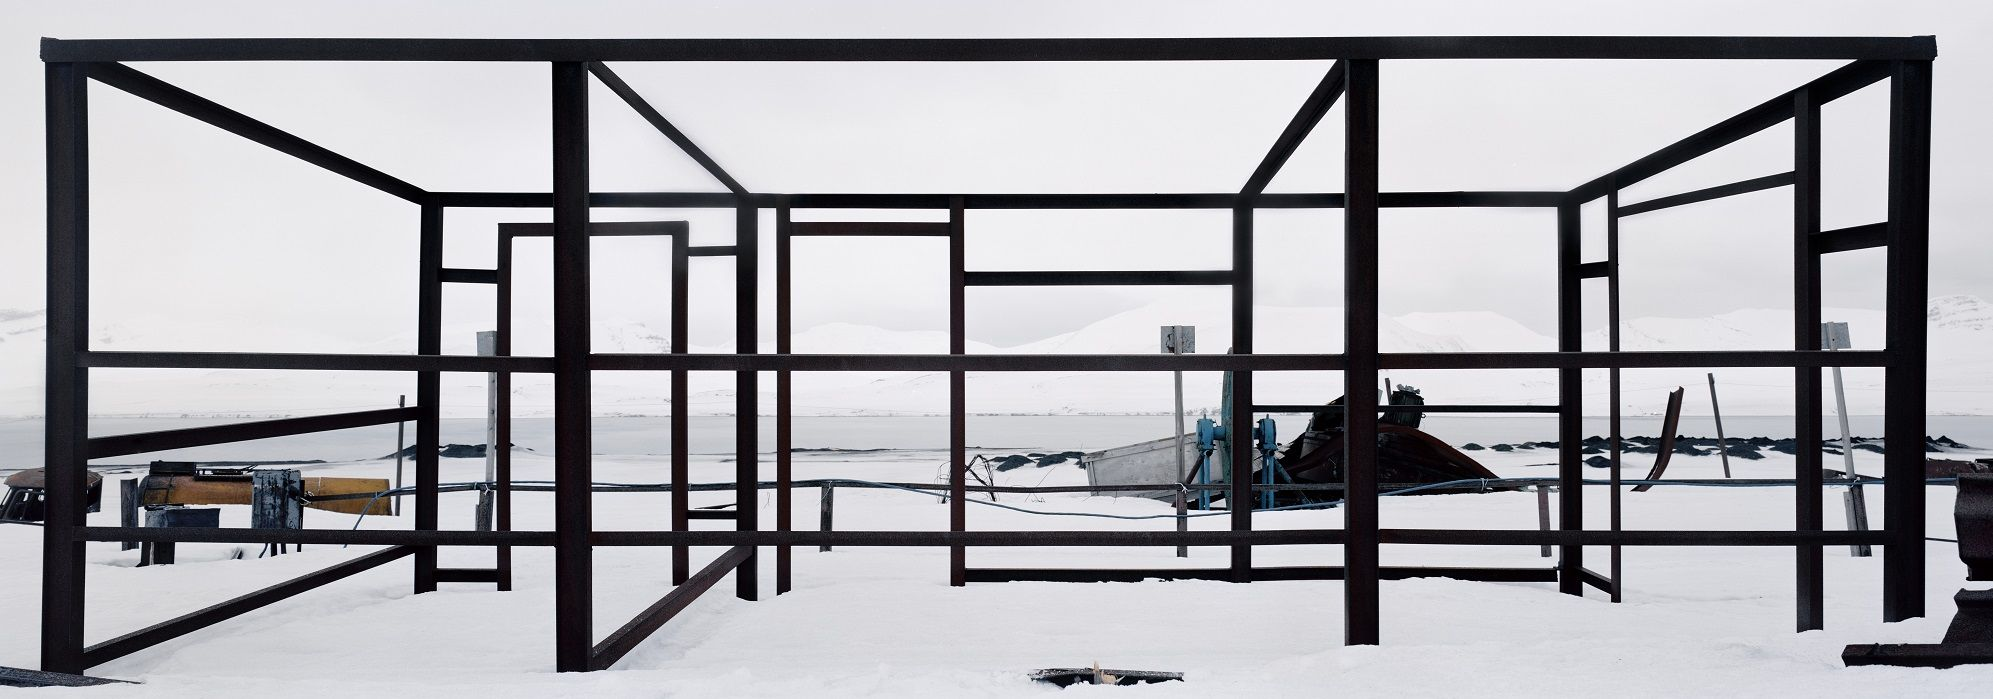 Steel Structure,Christian Houge,Photography